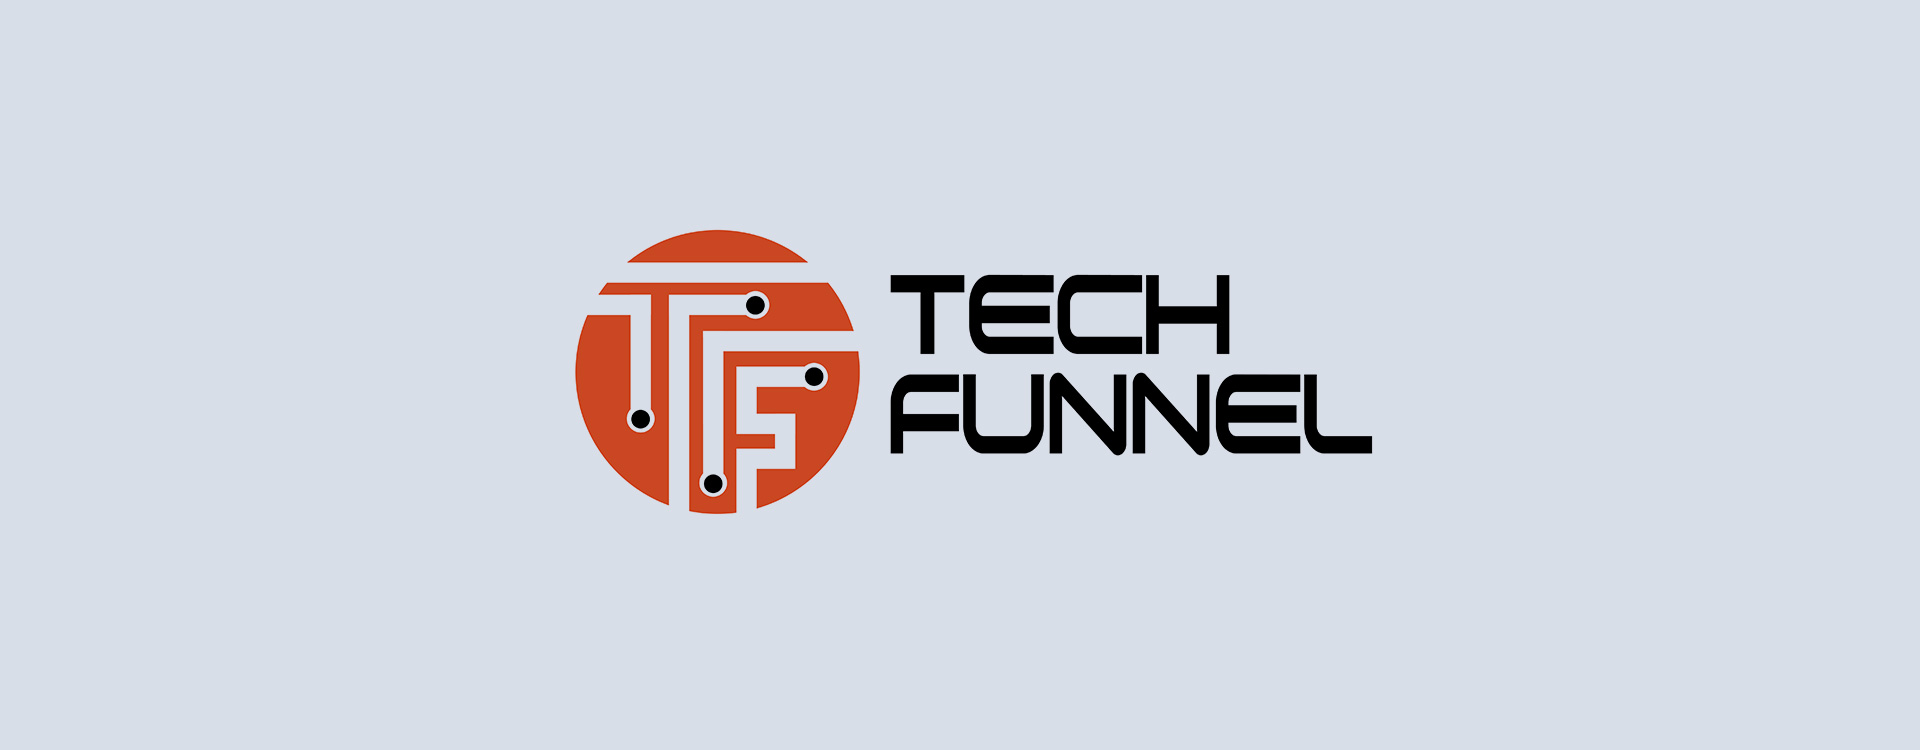 Tech Funnel logo